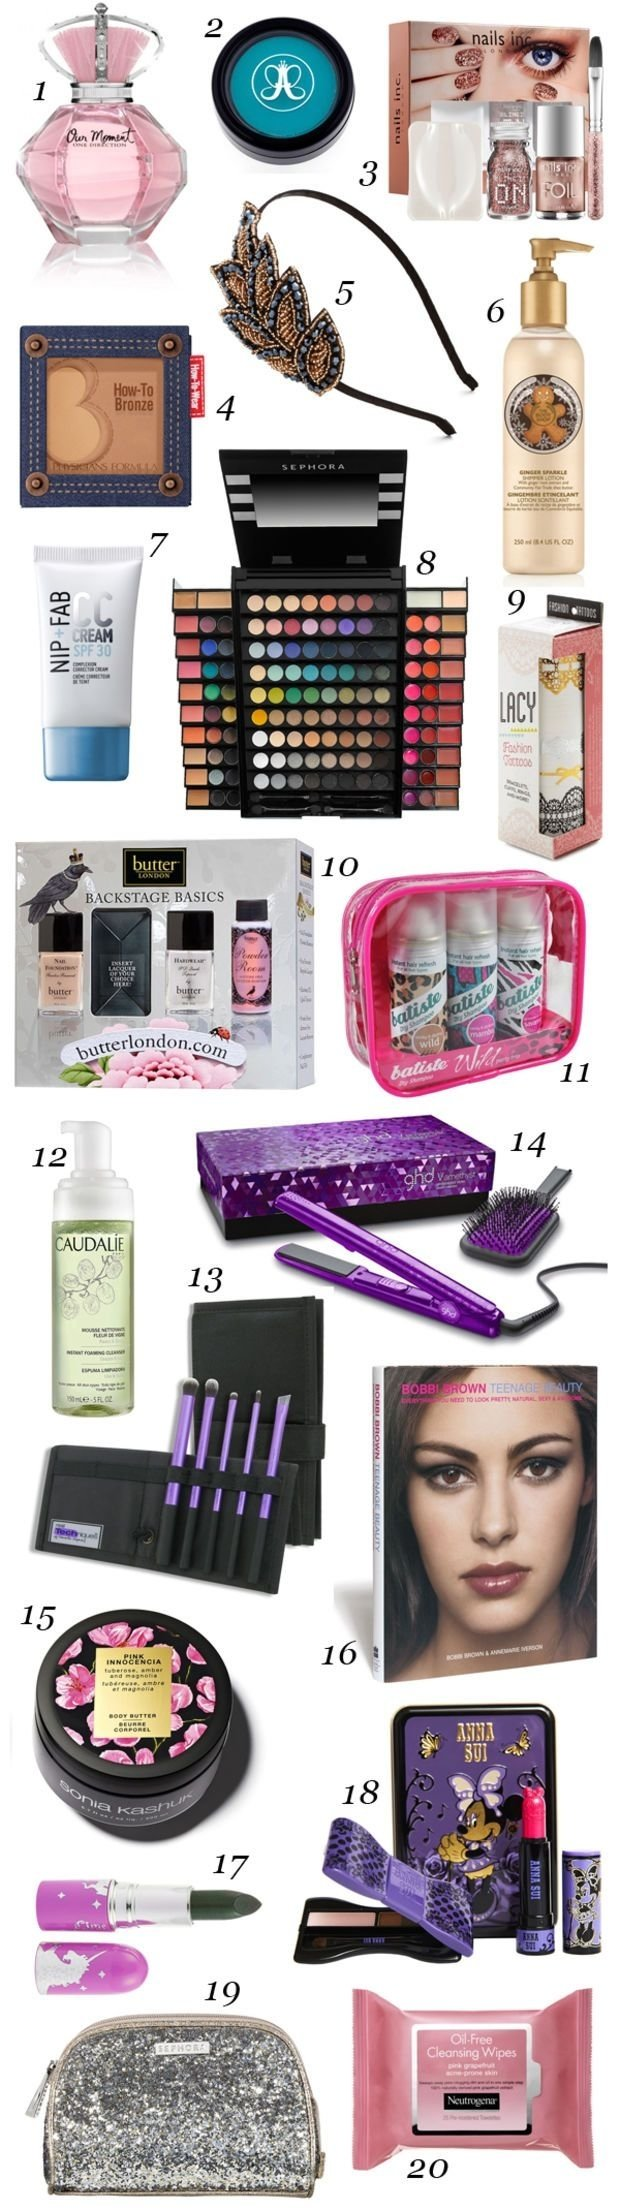 10 Fabulous Gift Ideas For 18 Year Old Girl 2021